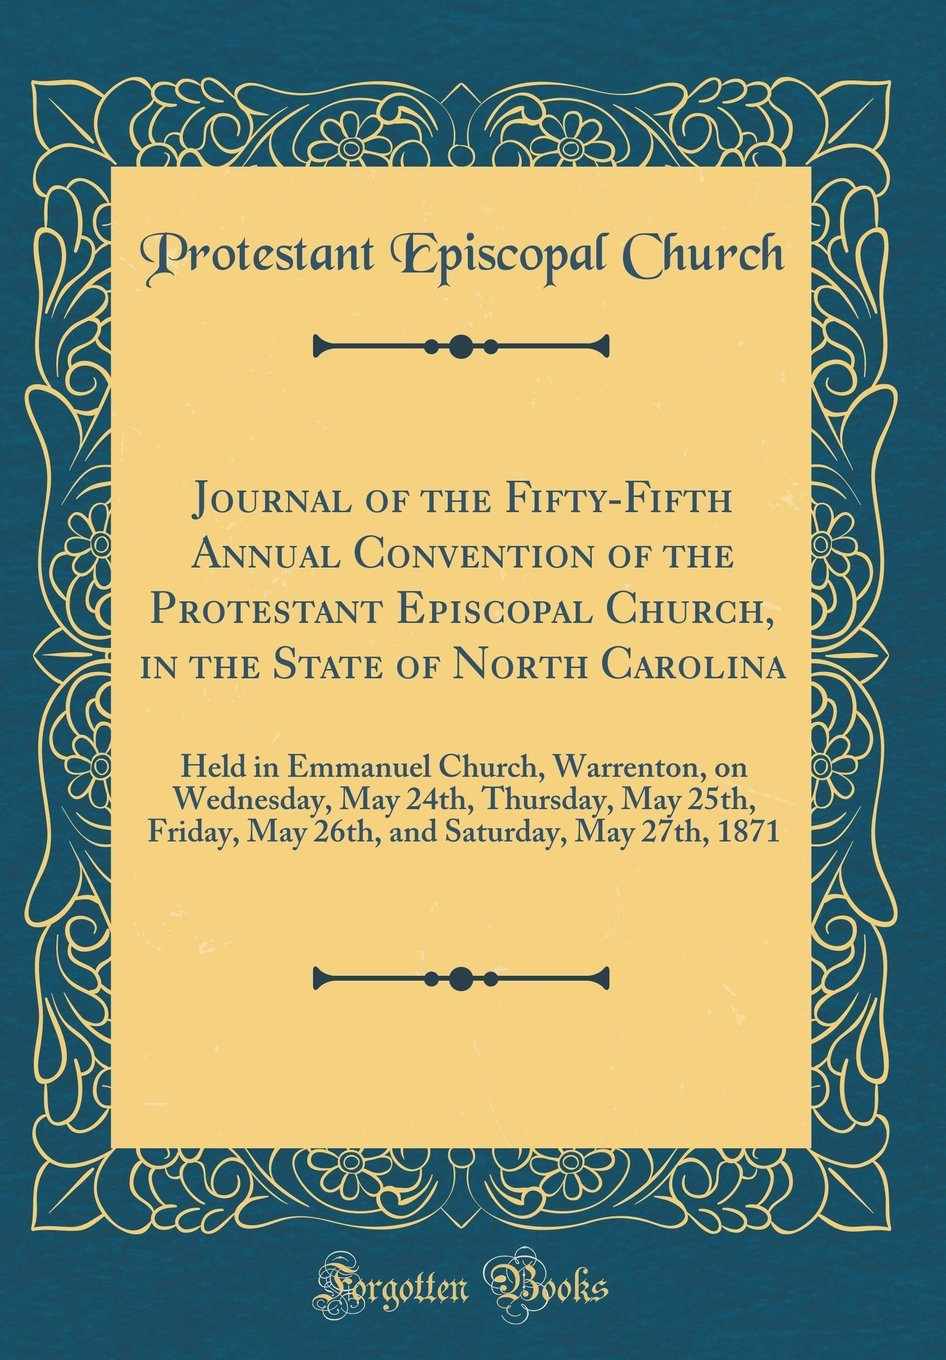 Download Journal of the Fifty-Fifth Annual Convention of the Protestant Episcopal Church, in the State of North Carolina: Held in Emmanuel Church, Warrenton, ... May 26th, and Saturday, May 27th, 1871 pdf epub